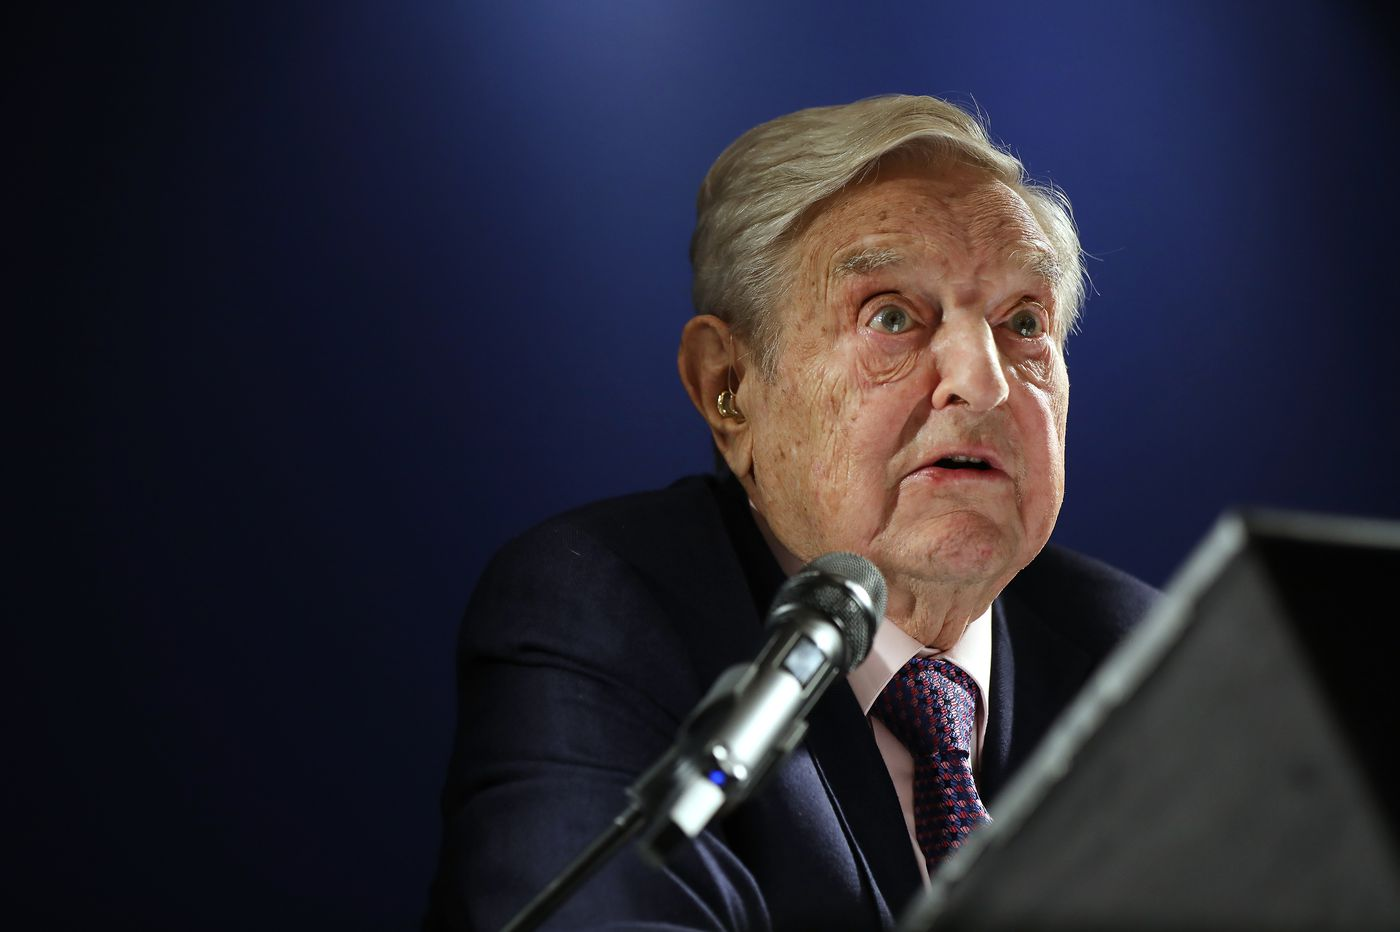 George Soros wading into the Delco District Attorney race shows problematic influence | Christine Flowers